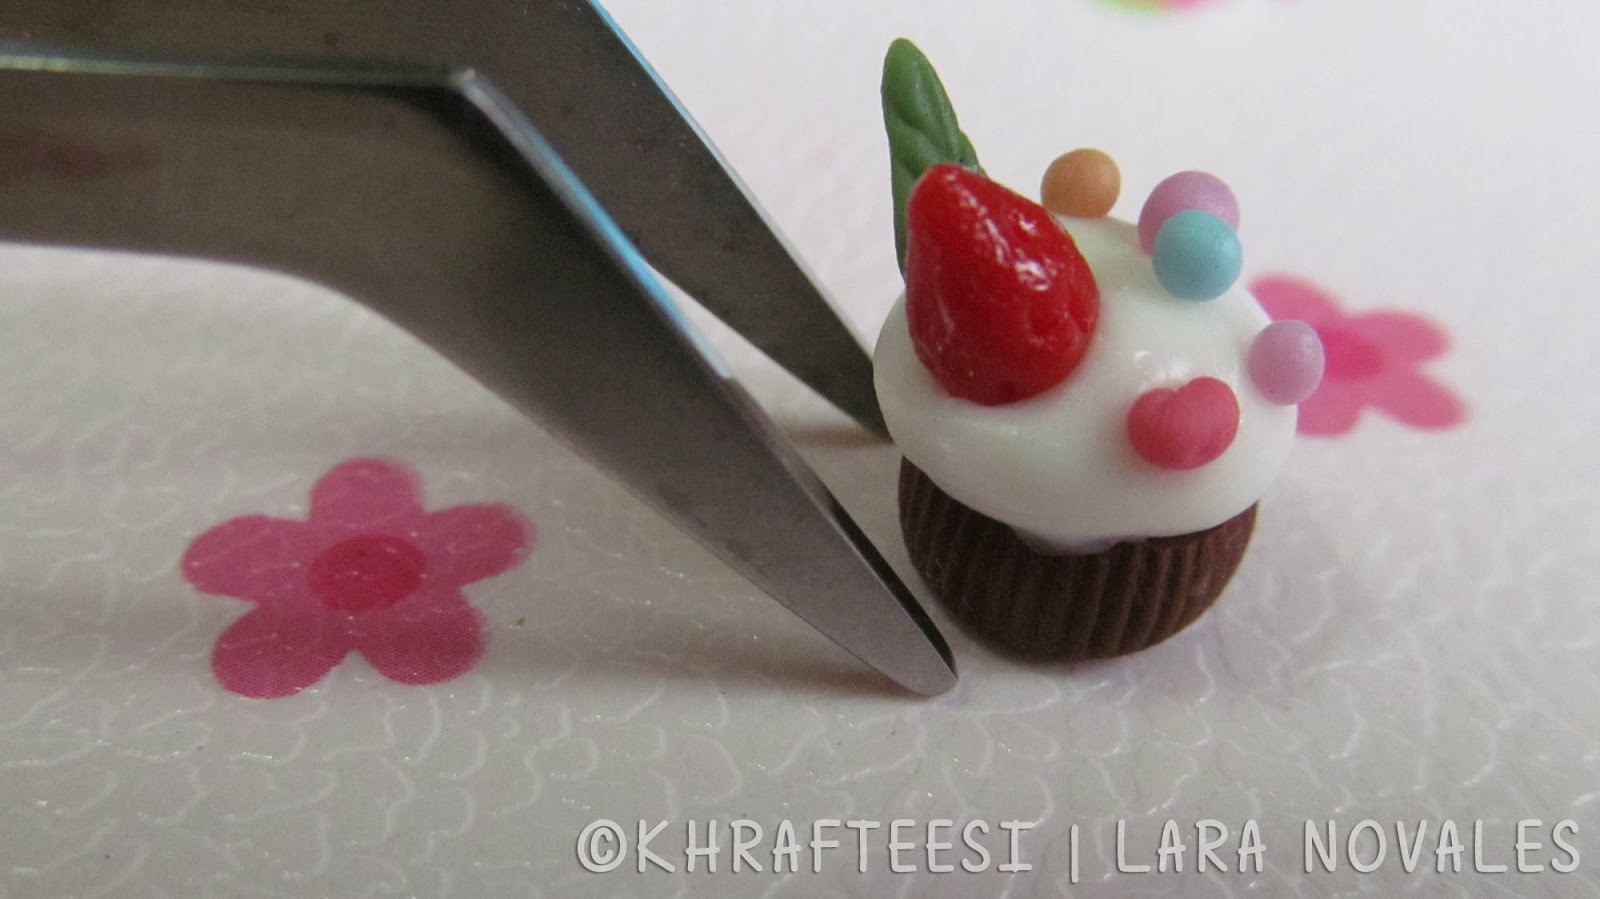 Cold porcelain clay mini cupcake 2